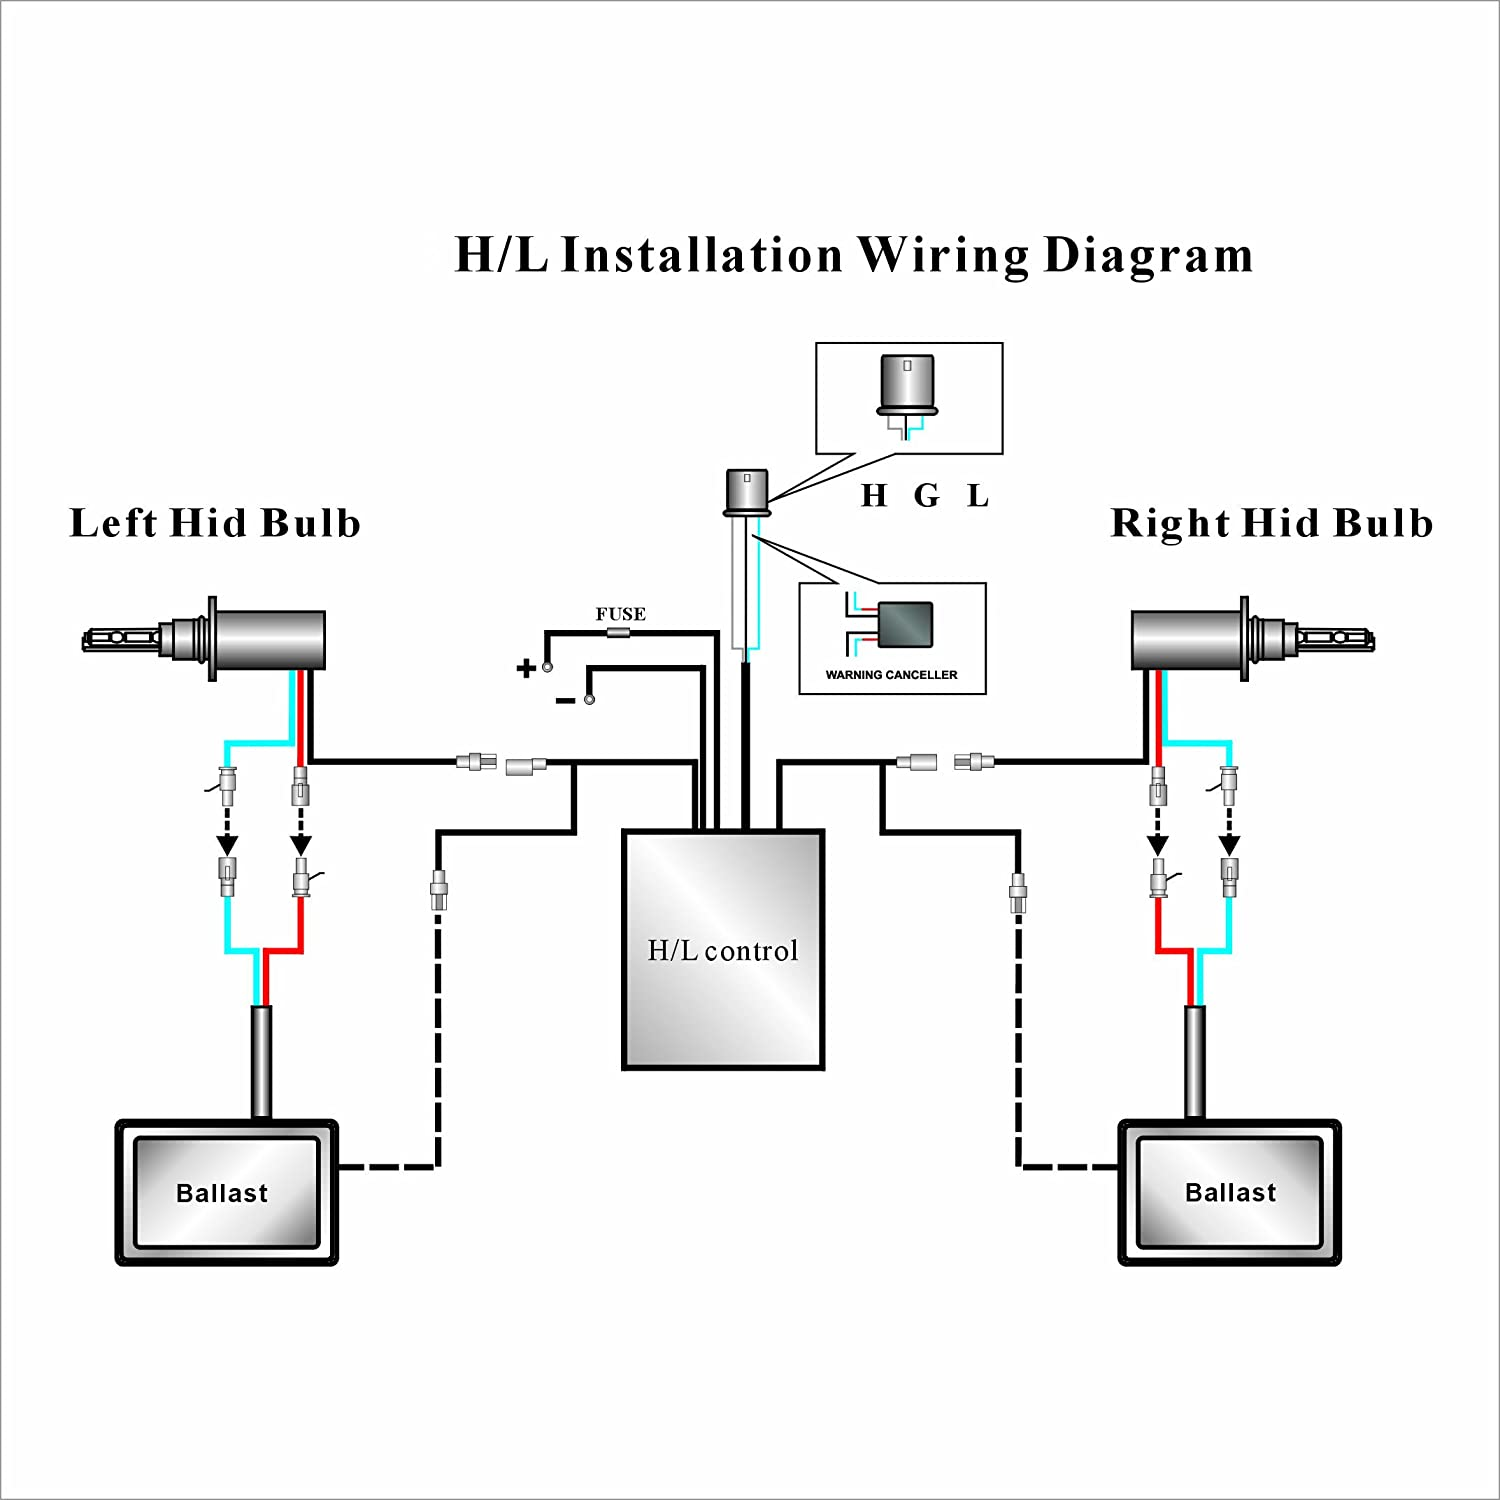 Wiring Diagram For Hid Lights : H hid wiring diagram images